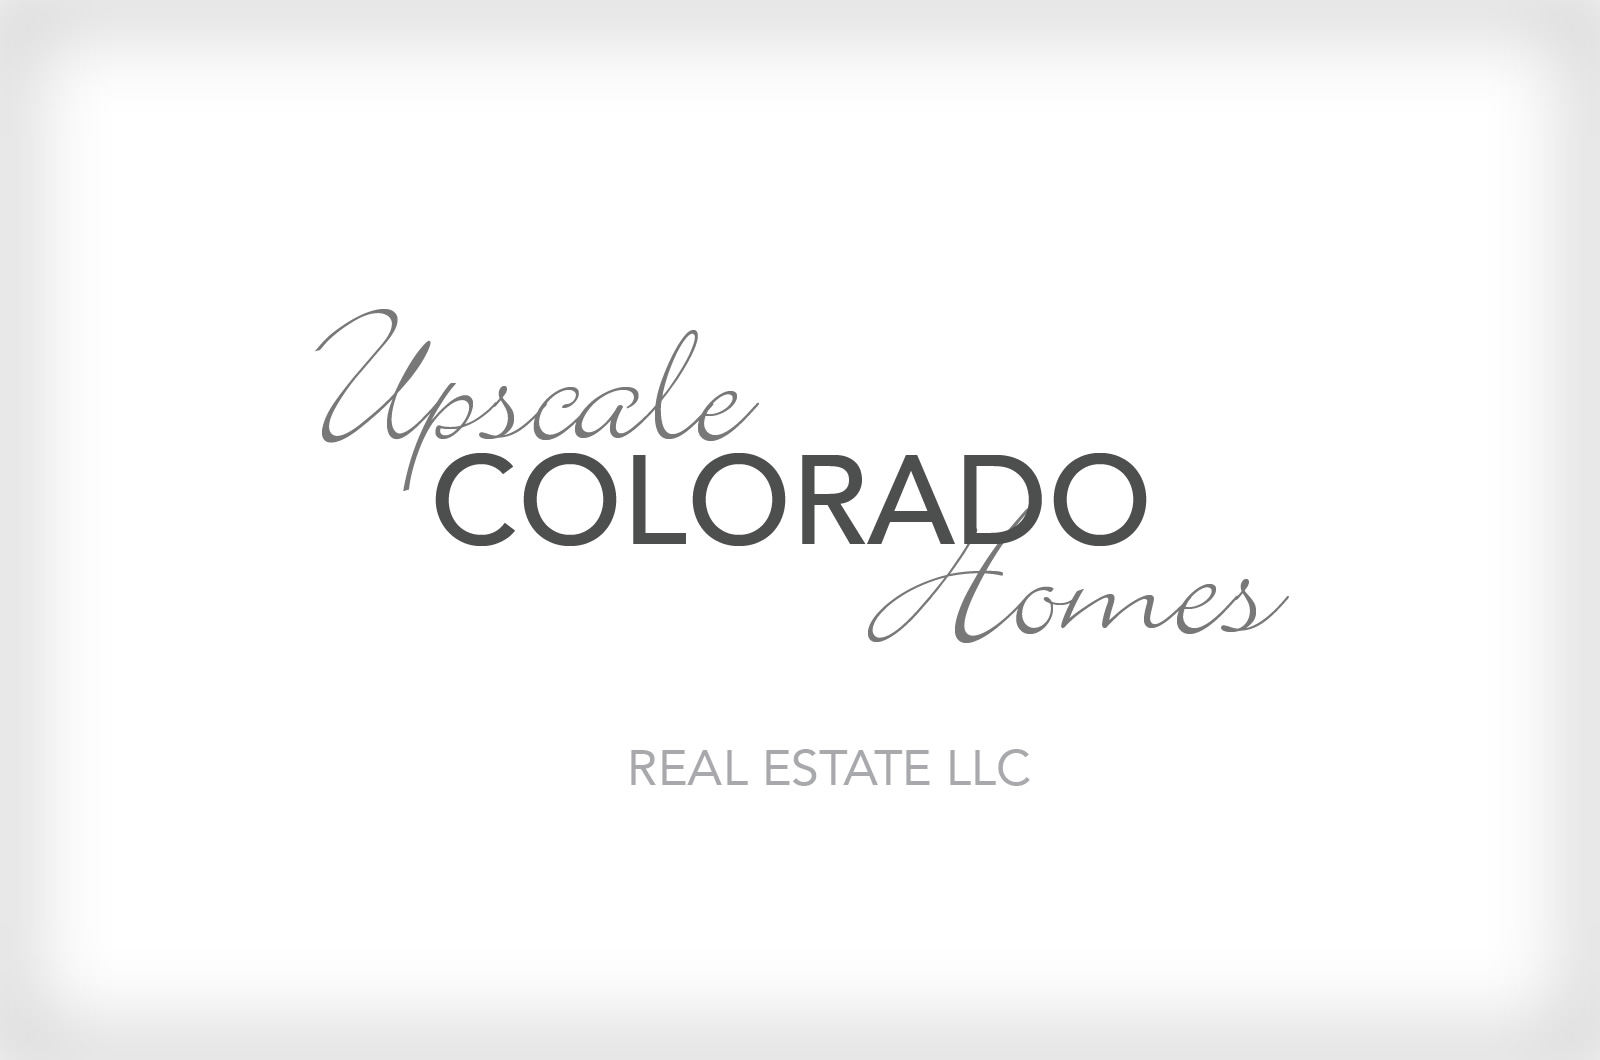 Upscale Colorado Homes